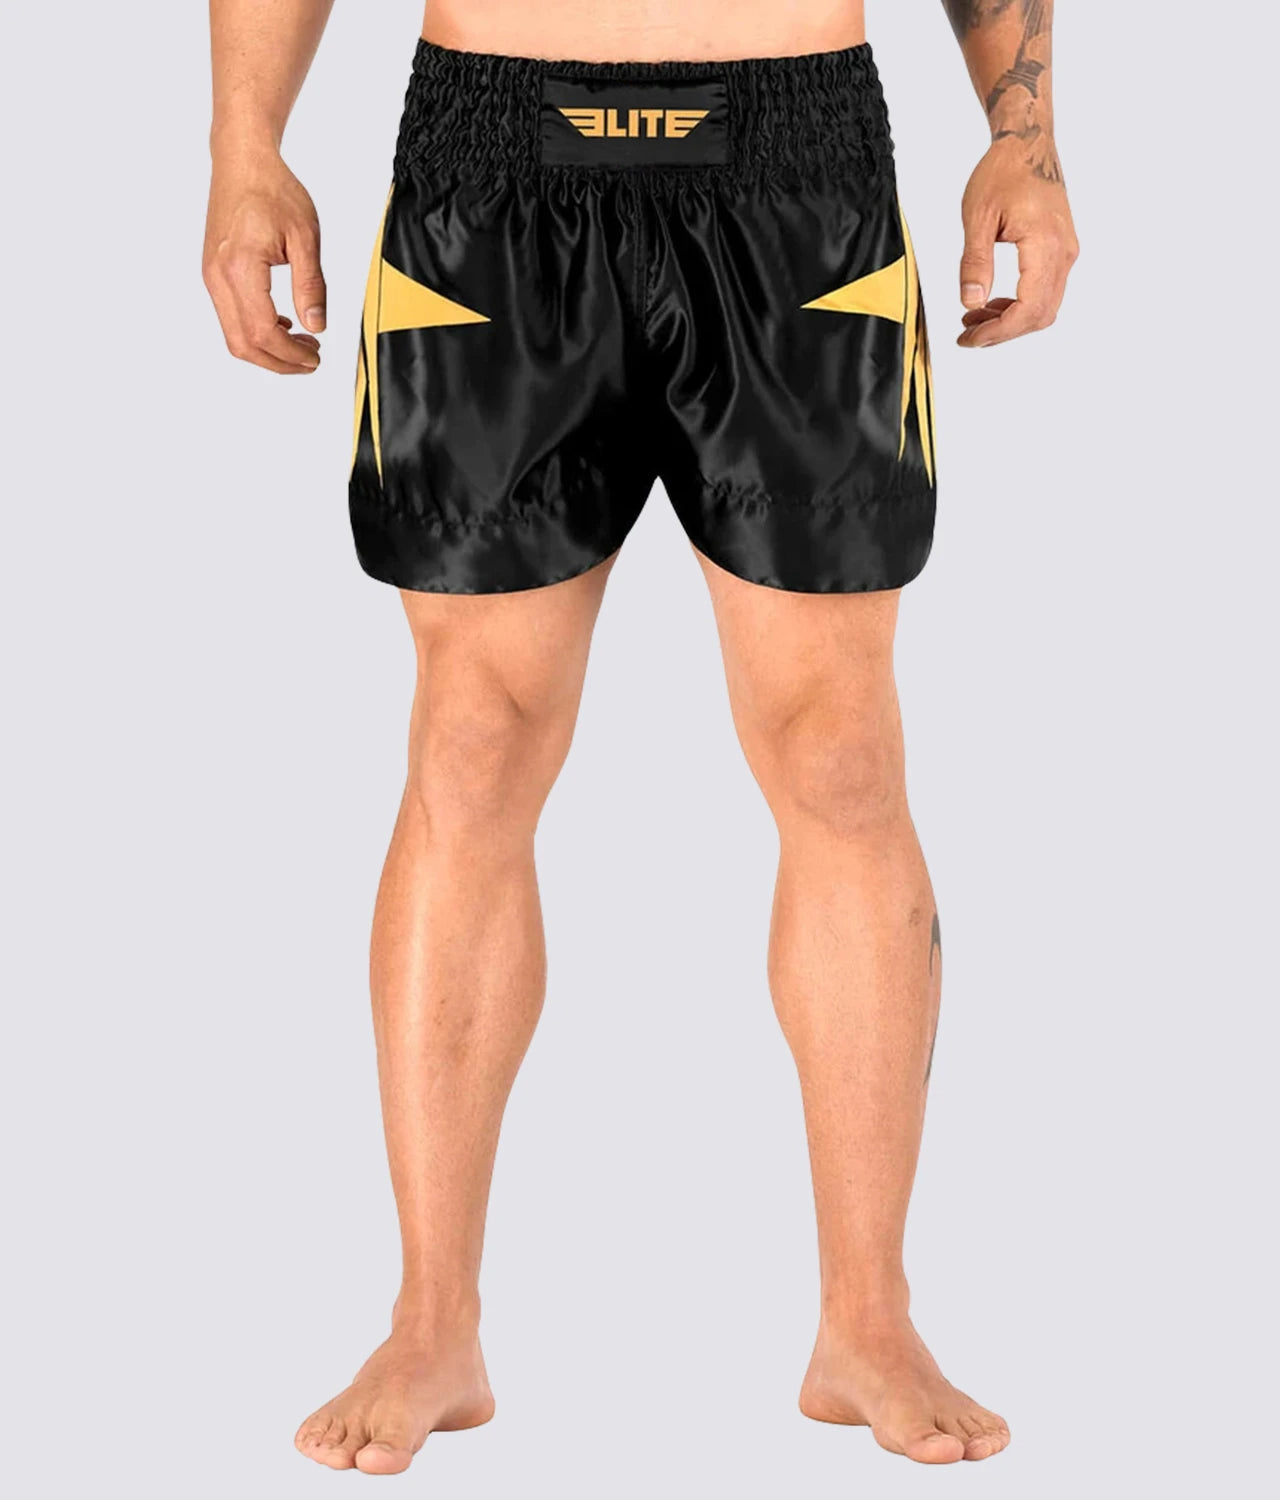 Elite Sports Star Series Sublimation Black/Gold Muay Thai Shorts